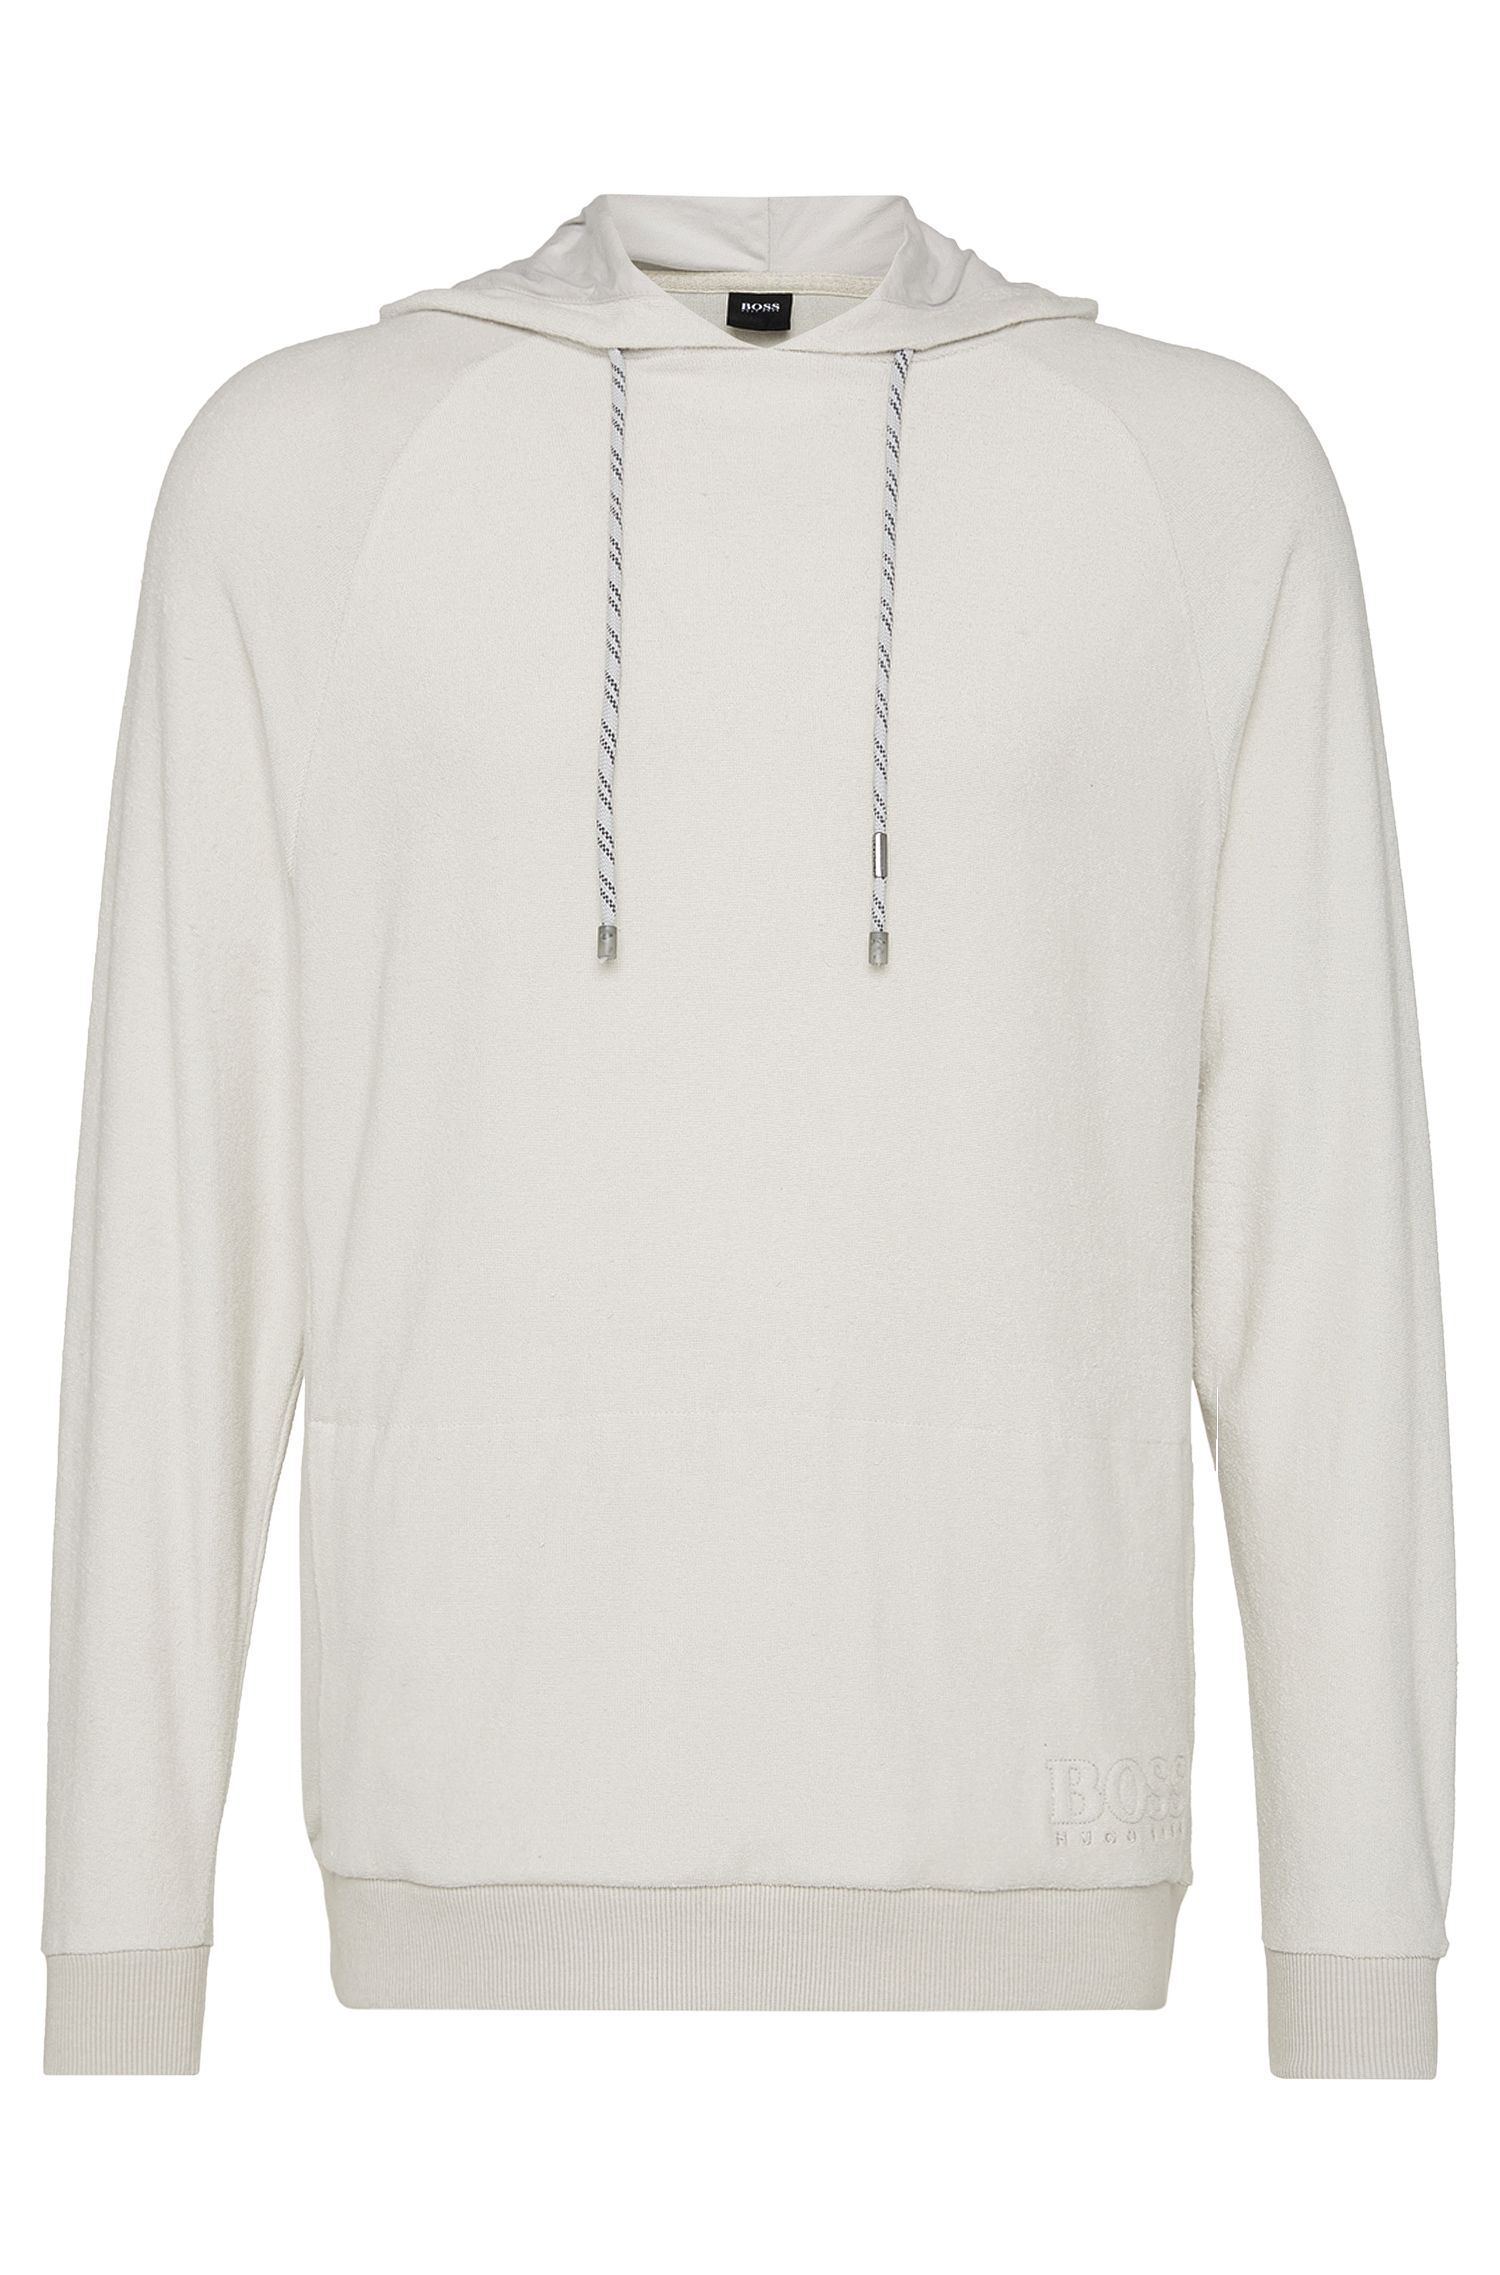 Sweatshirt aus Baumwolle: 'Shirt Hooded LS'